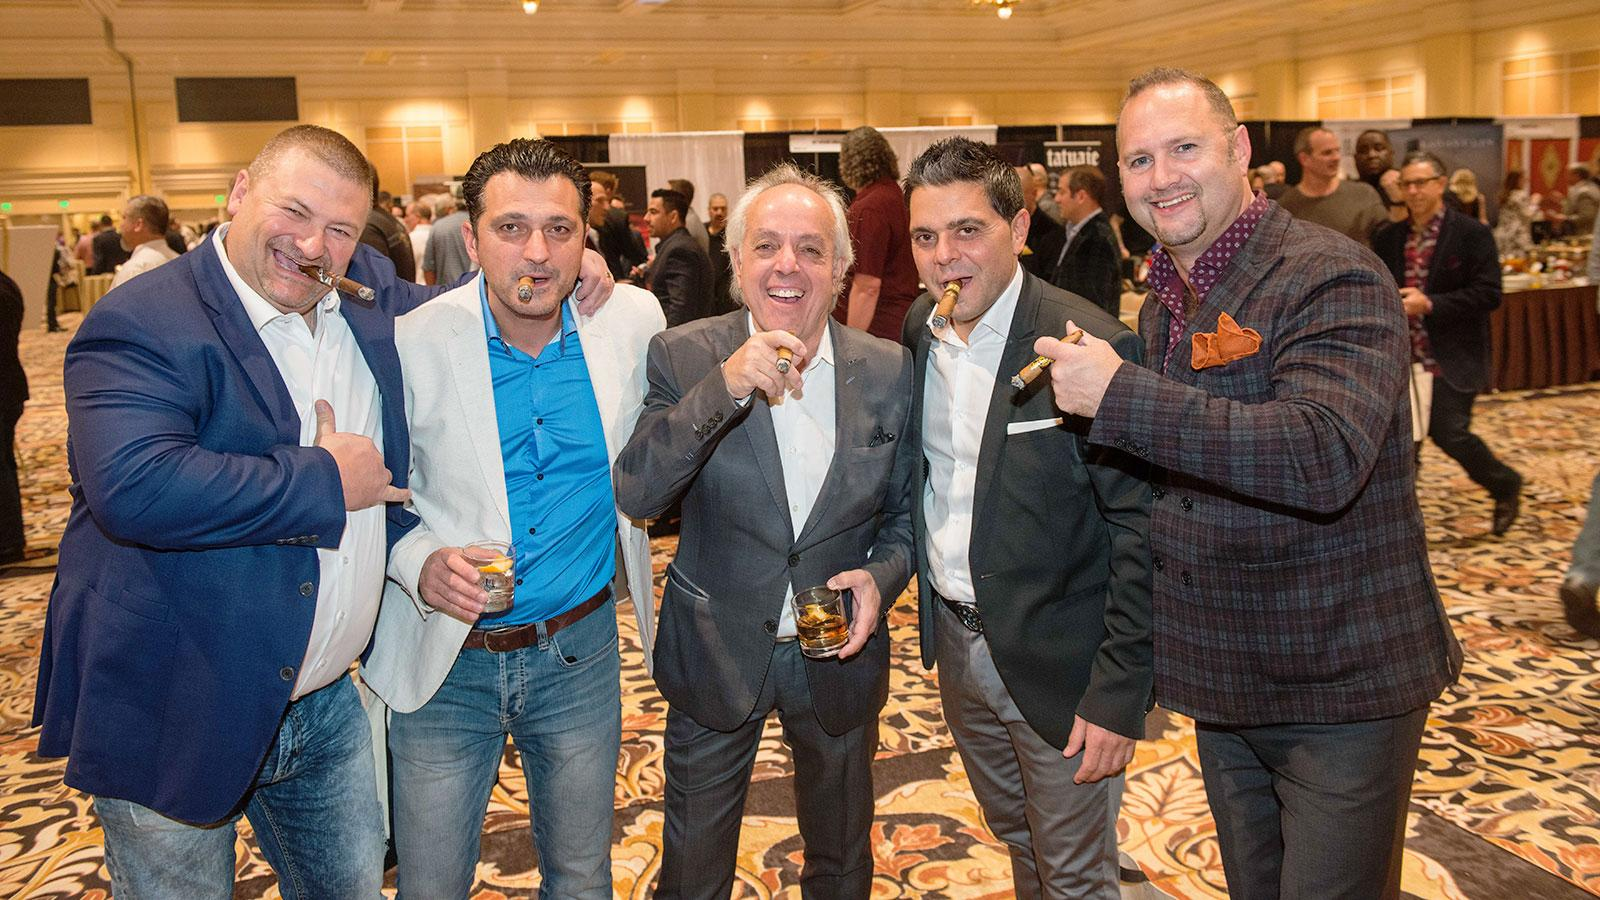 Carlos Salsa, Paulo Dias, Francois Castellon, Lucca Amicone and Ray Bourgeois looking sharp with their cigars.